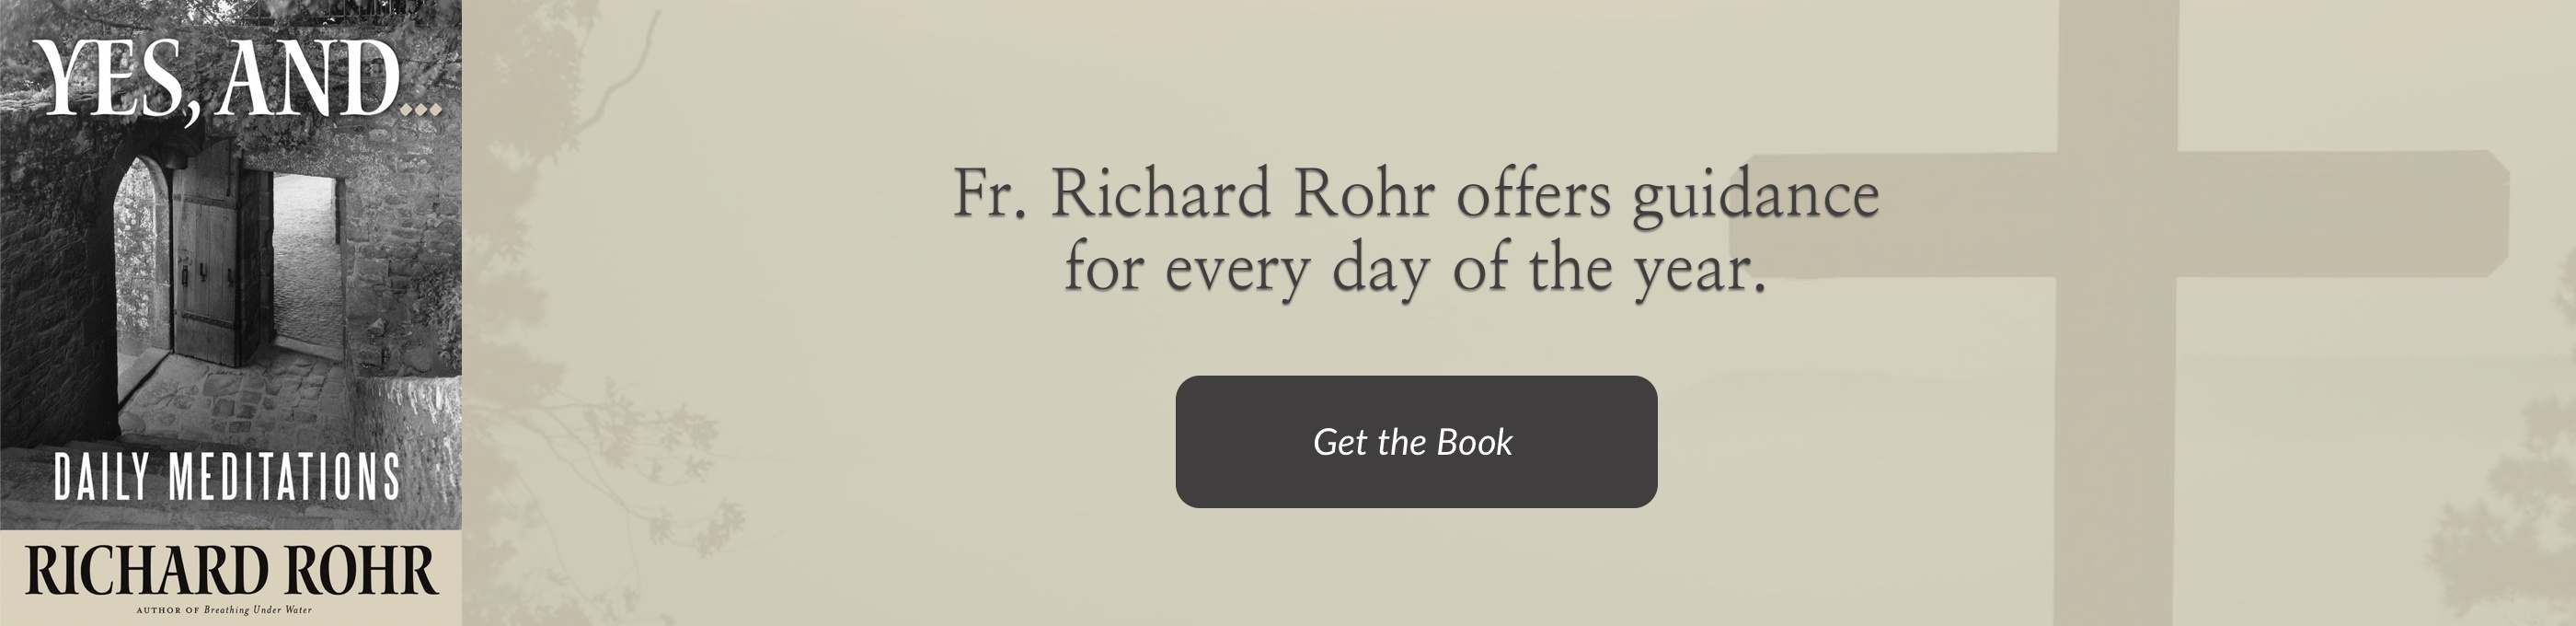 Yes, And ...: Daily Meditations by Richard Rohr